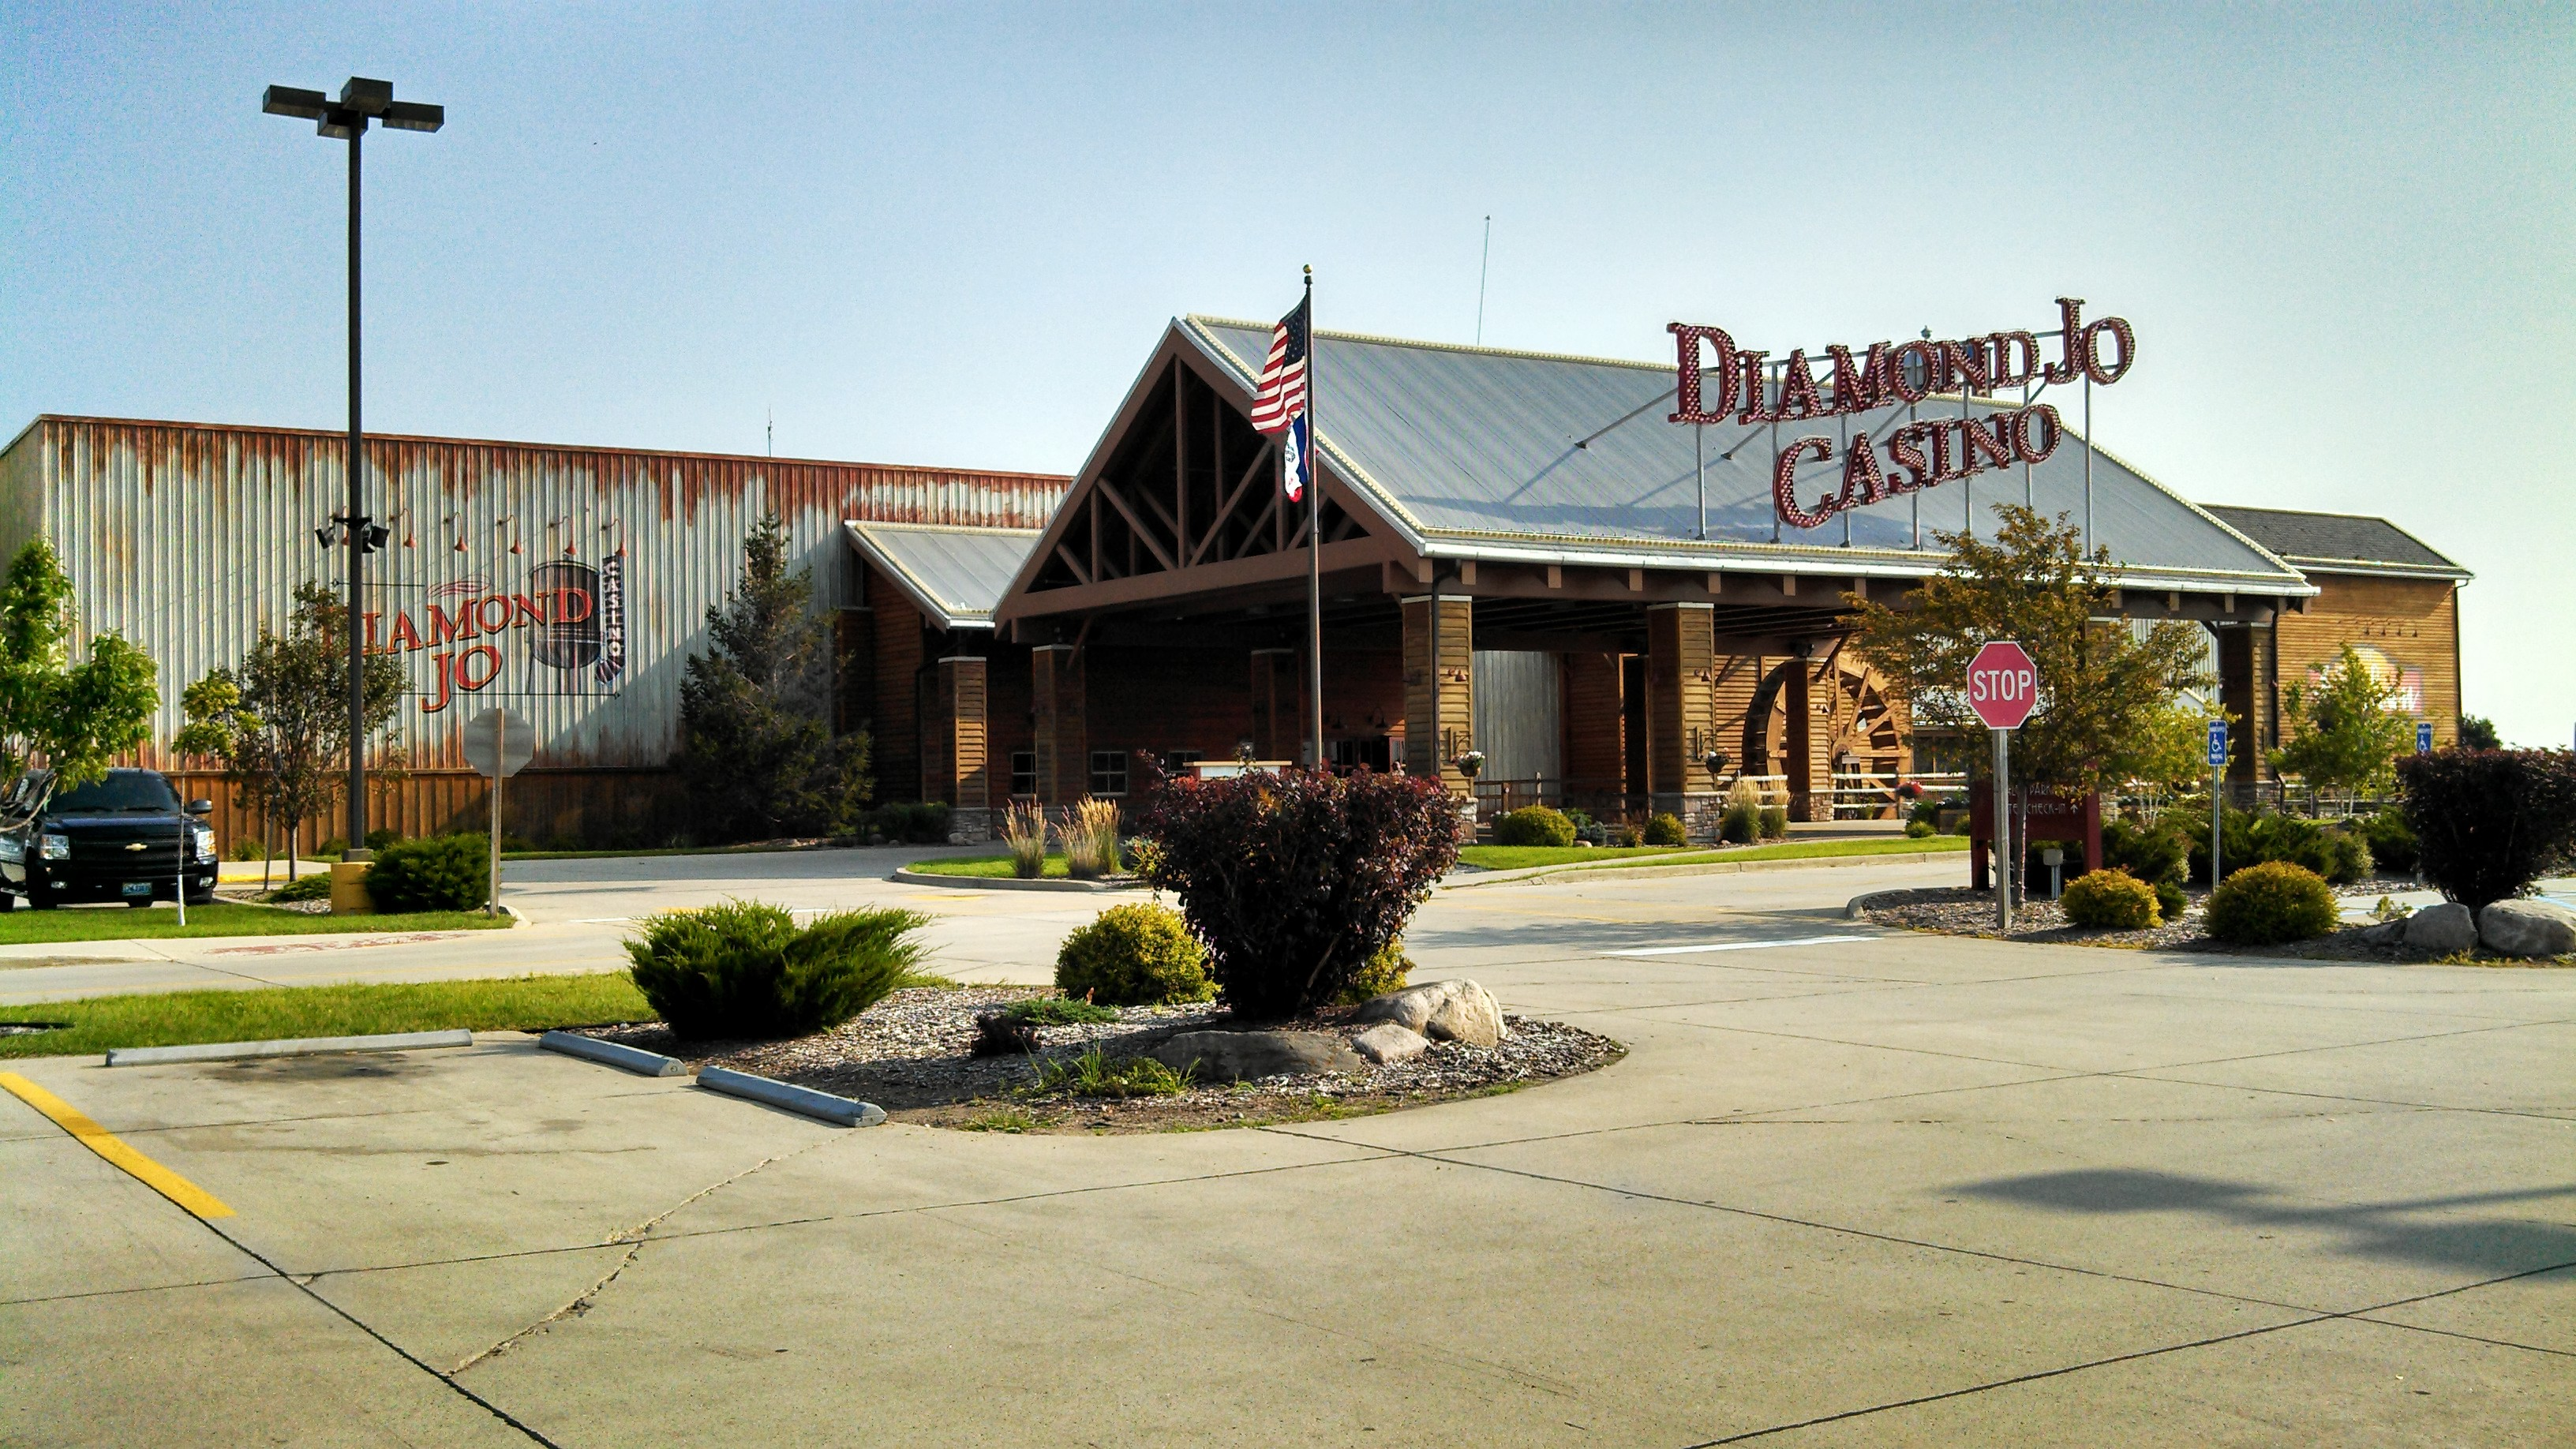 Diamond Joe Casino Northwood Iowa